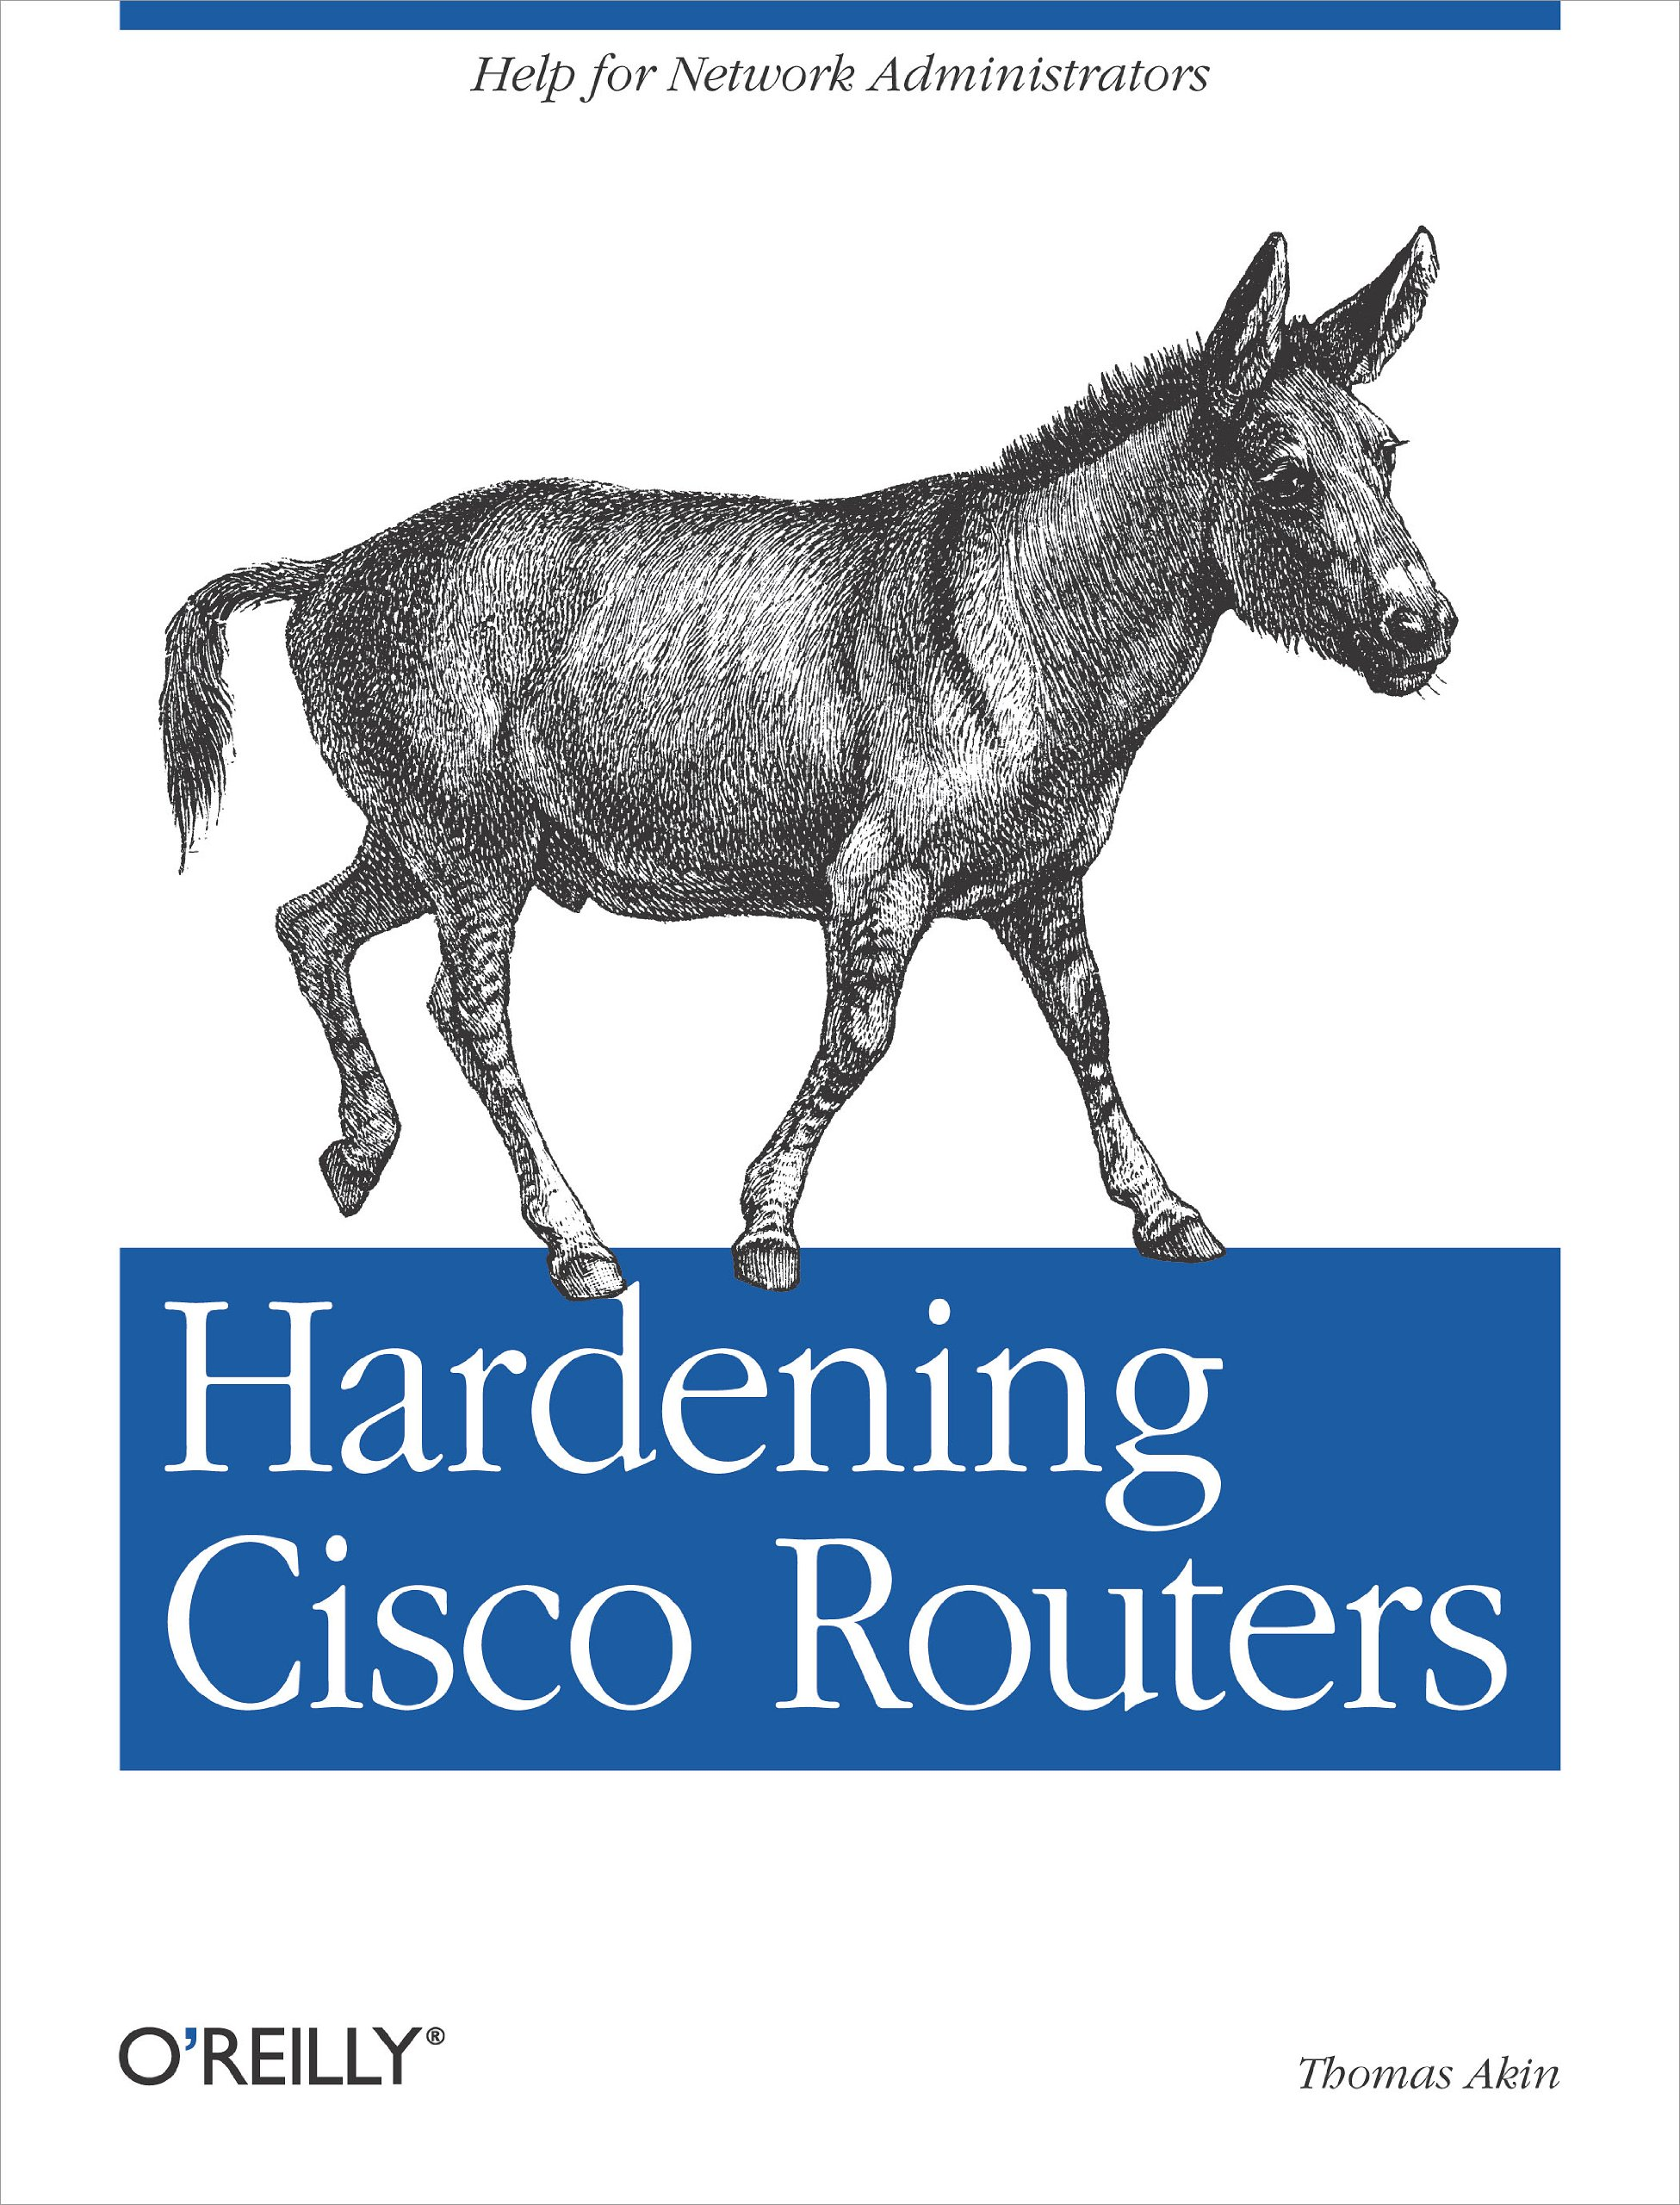 Image OfHardening Cisco Routers: Help For Network Administrators (English Edition)